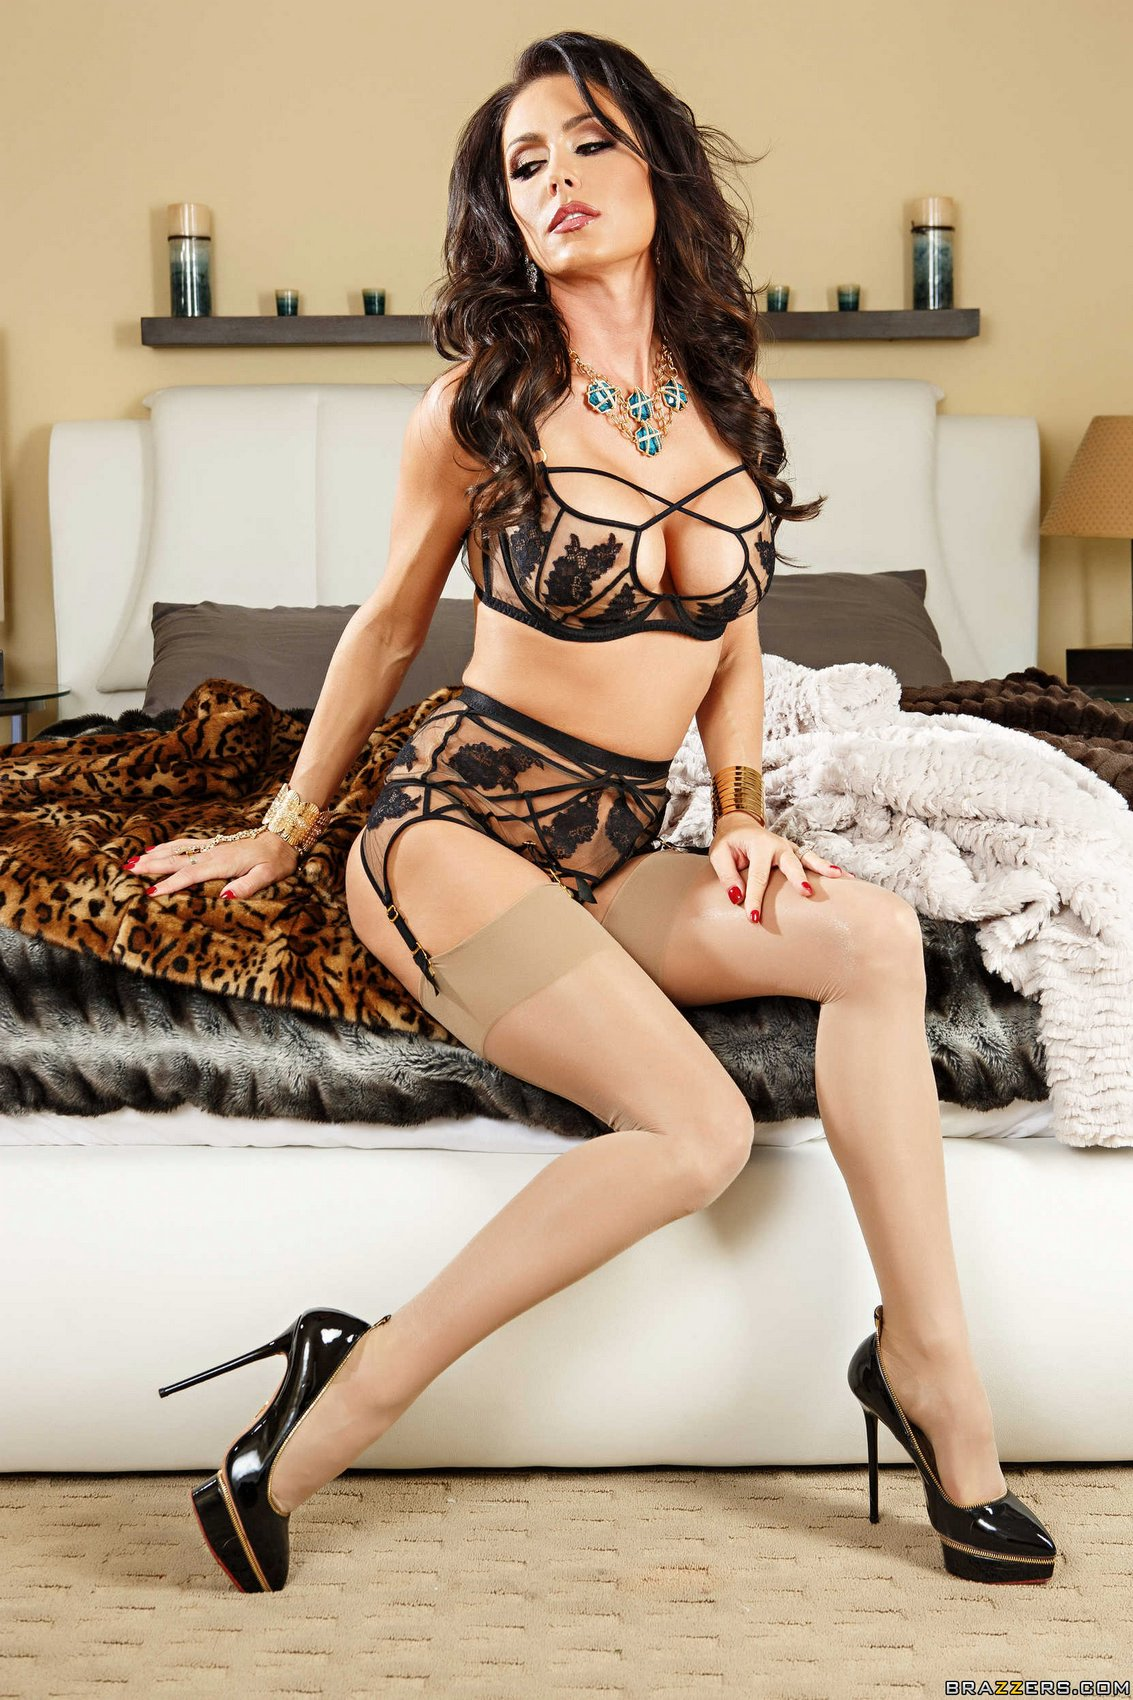 Not tell Jessica jaymes hot milf